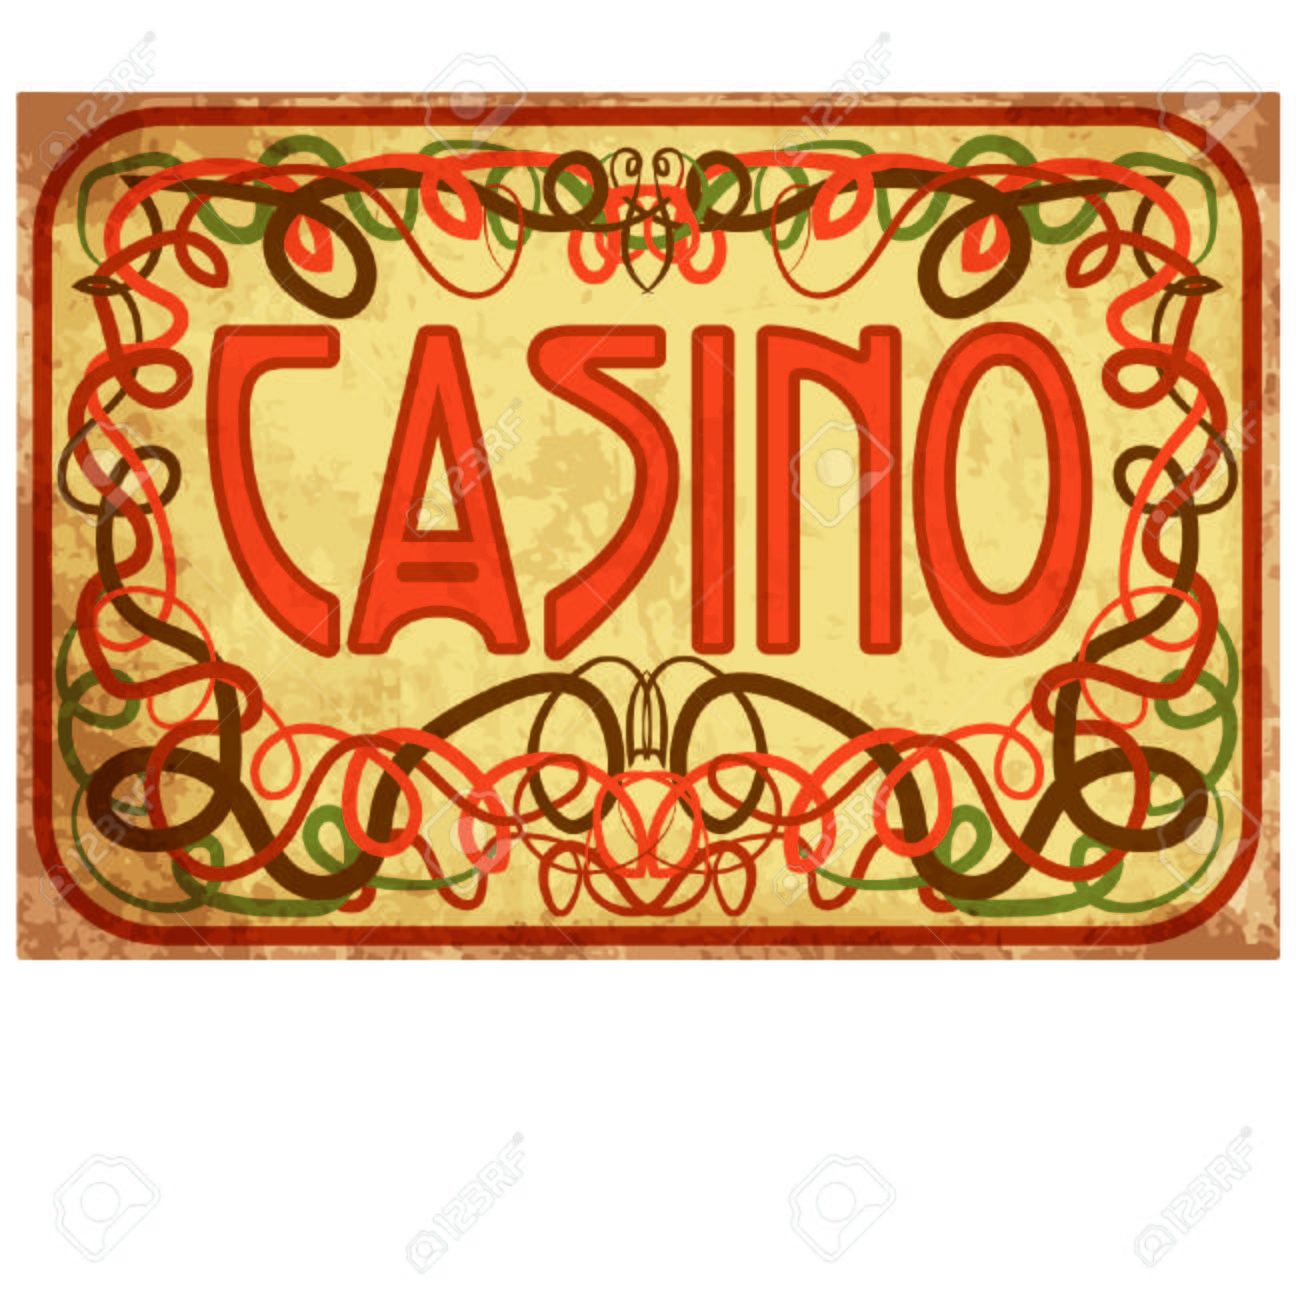 Casino Wallpaper In Art Nouveau Style, Vector Illustration Royalty ...